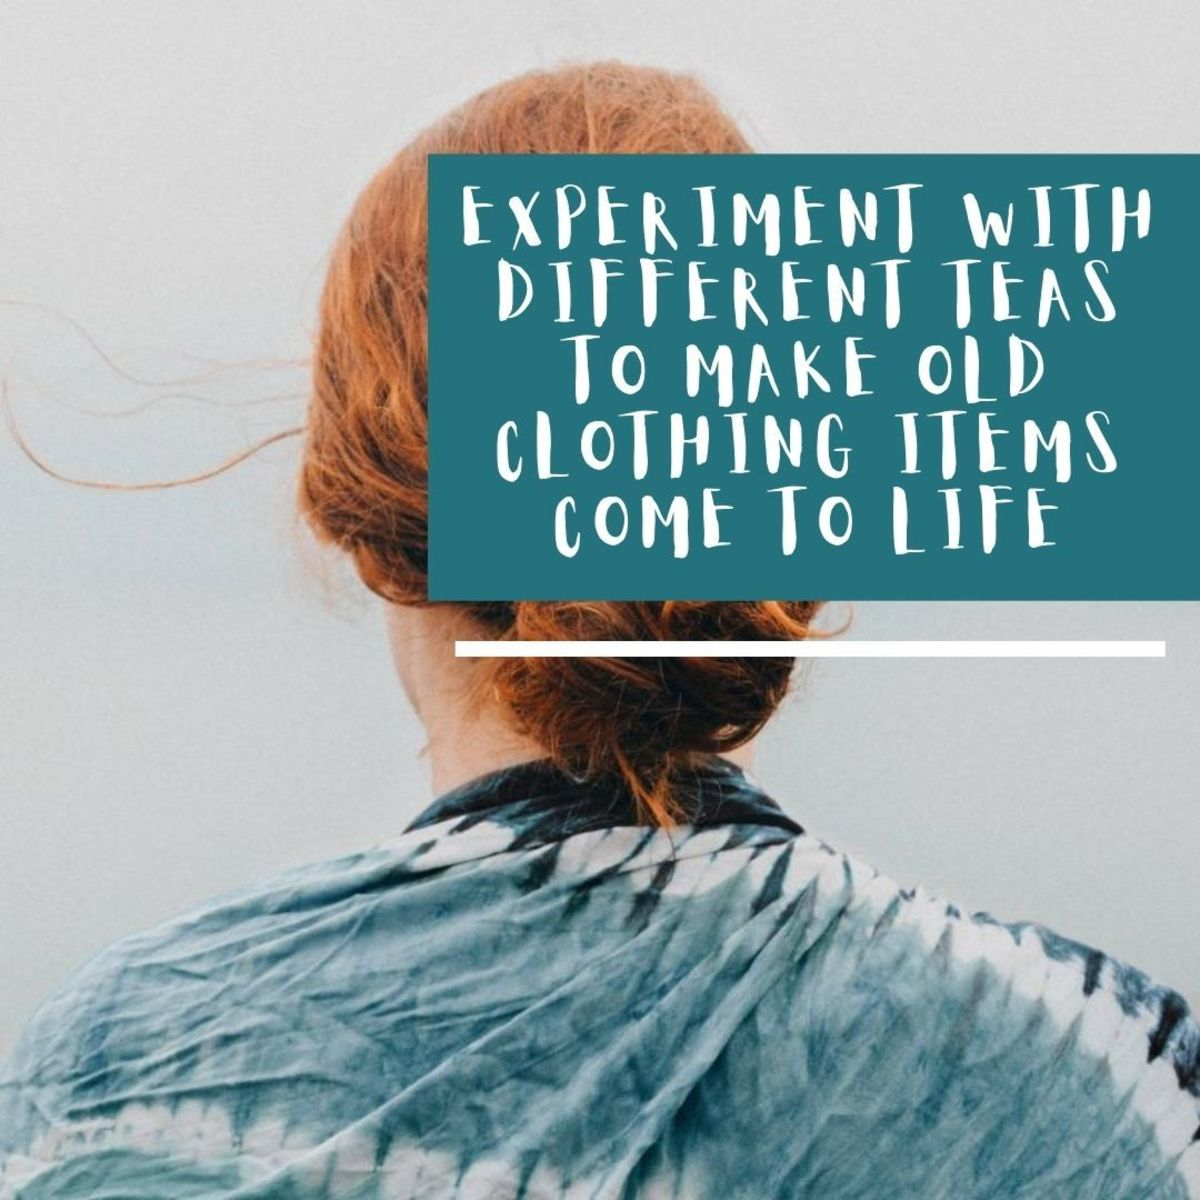 Experiment with different teas to make old clothing items come to life.